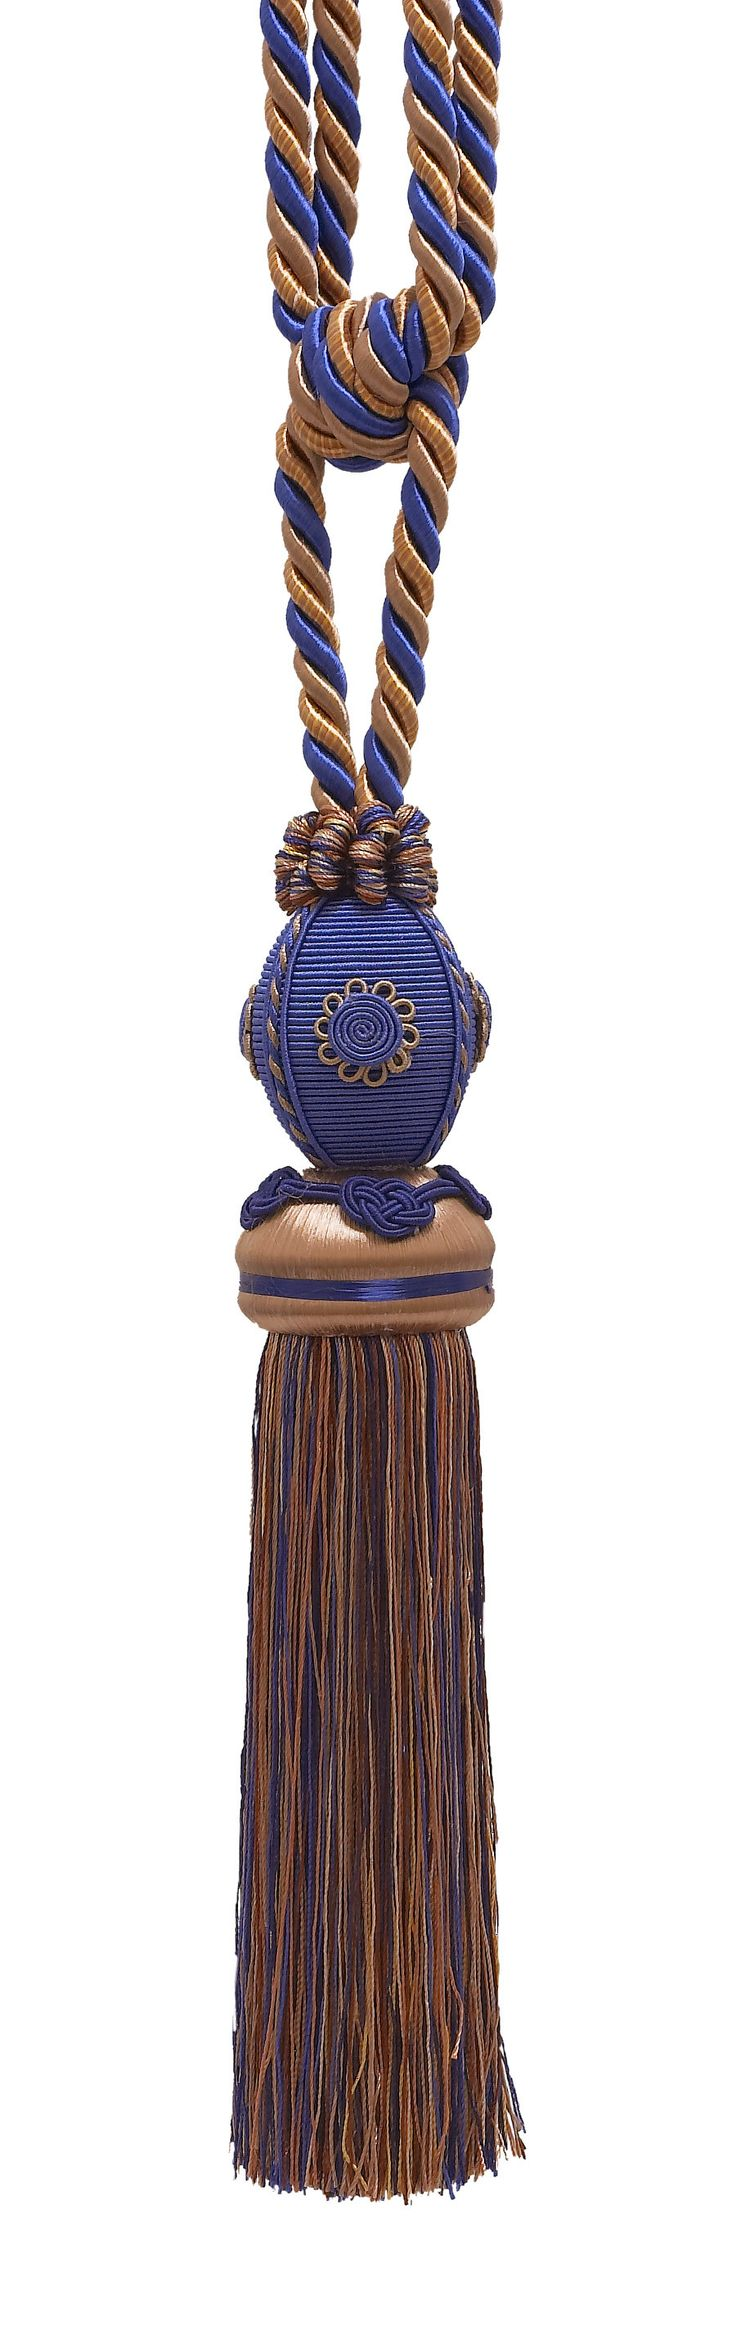 """Exquisite Ultramarine Blue, Tan Curtain & Drapery Single Tassel Tieback/ 10"""" tassel / 30"""" Spread (embrace), 3/8"""" Cord, Baroque Collection Style# TBB-1 Color: NAVY TAUPE 5817"""